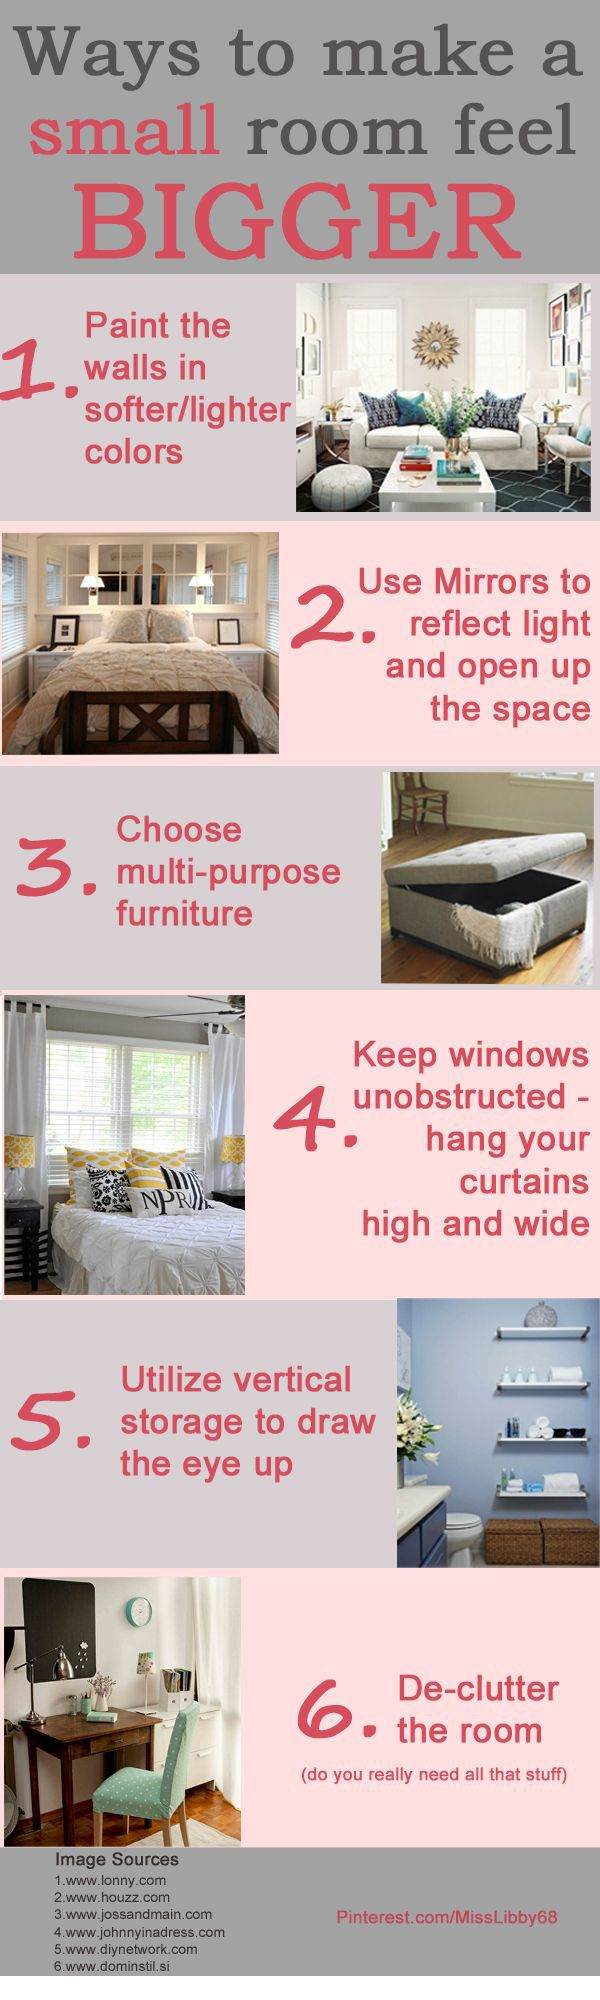 20 Bedroom Organization Tips To Make The Most Of A Small Space. 17 Best ideas about Small Bedrooms on Pinterest   Ideas for small